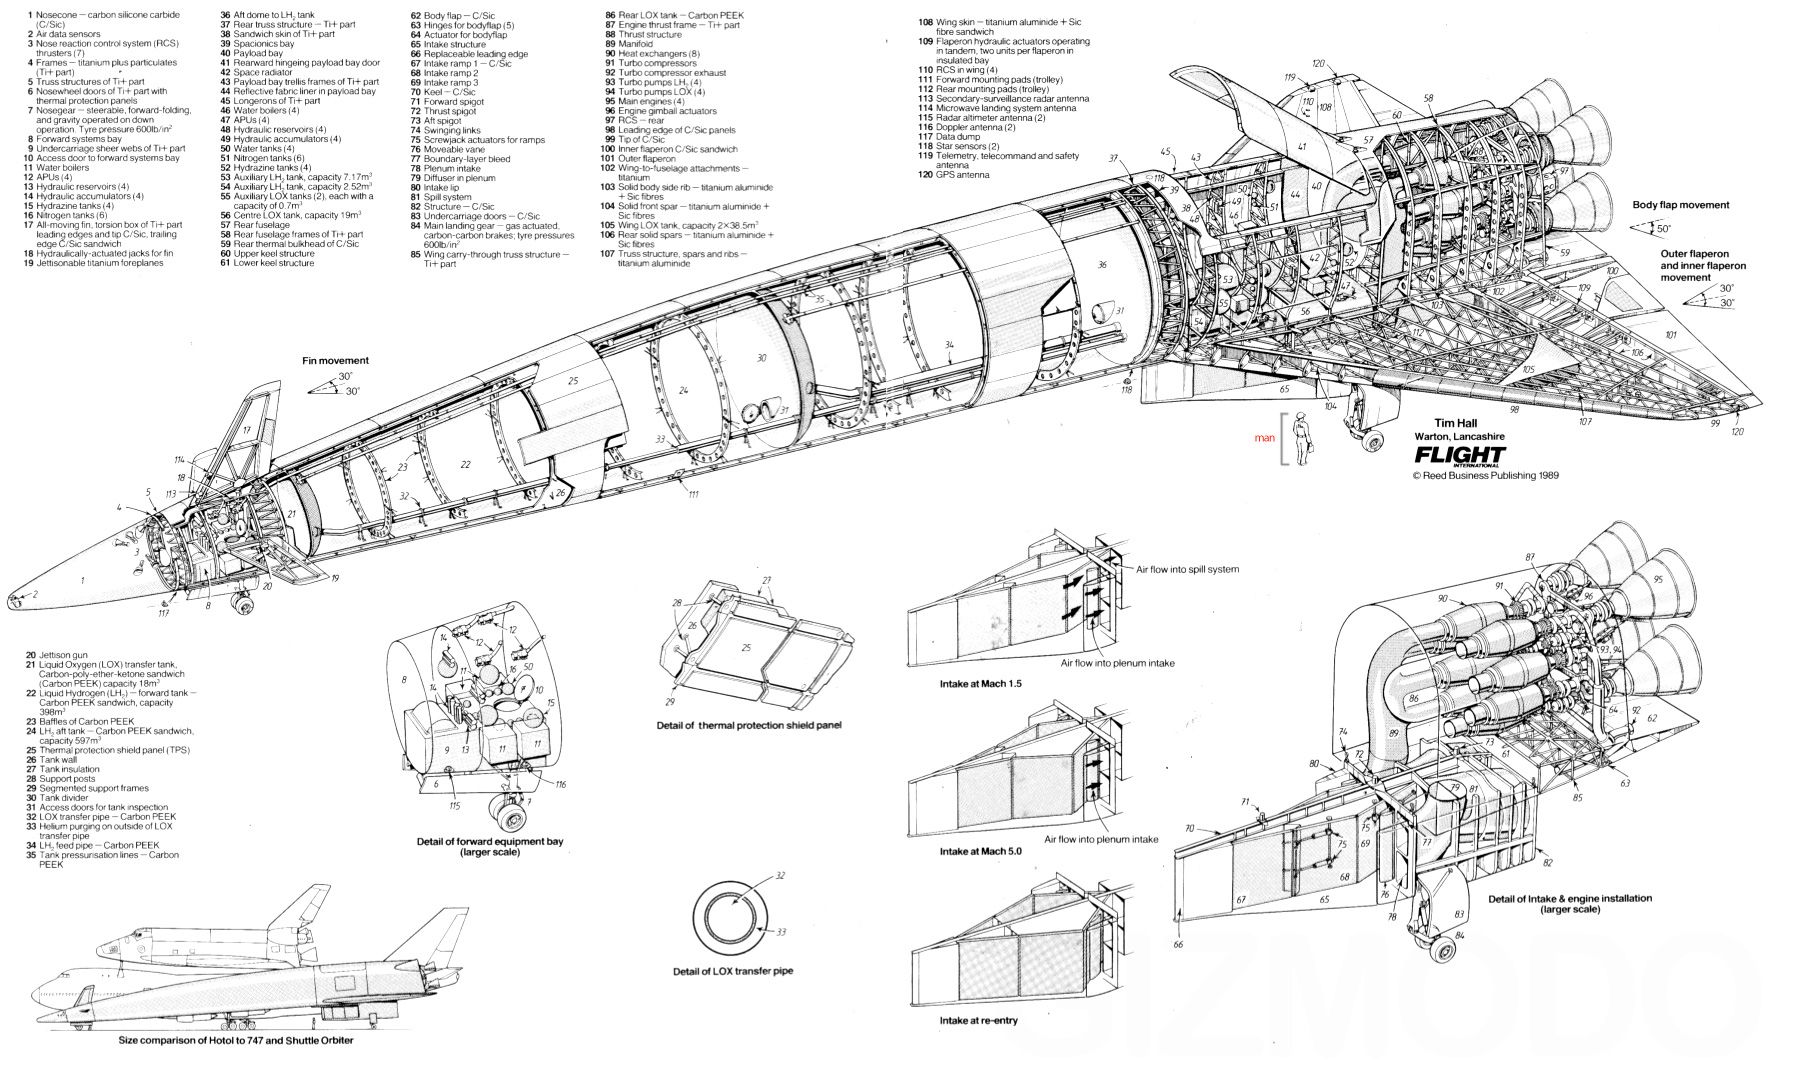 Hotol The Reusable Spaceship Coming Back From 80s World War Space Shuttle Engine Diagram Rocket Launch